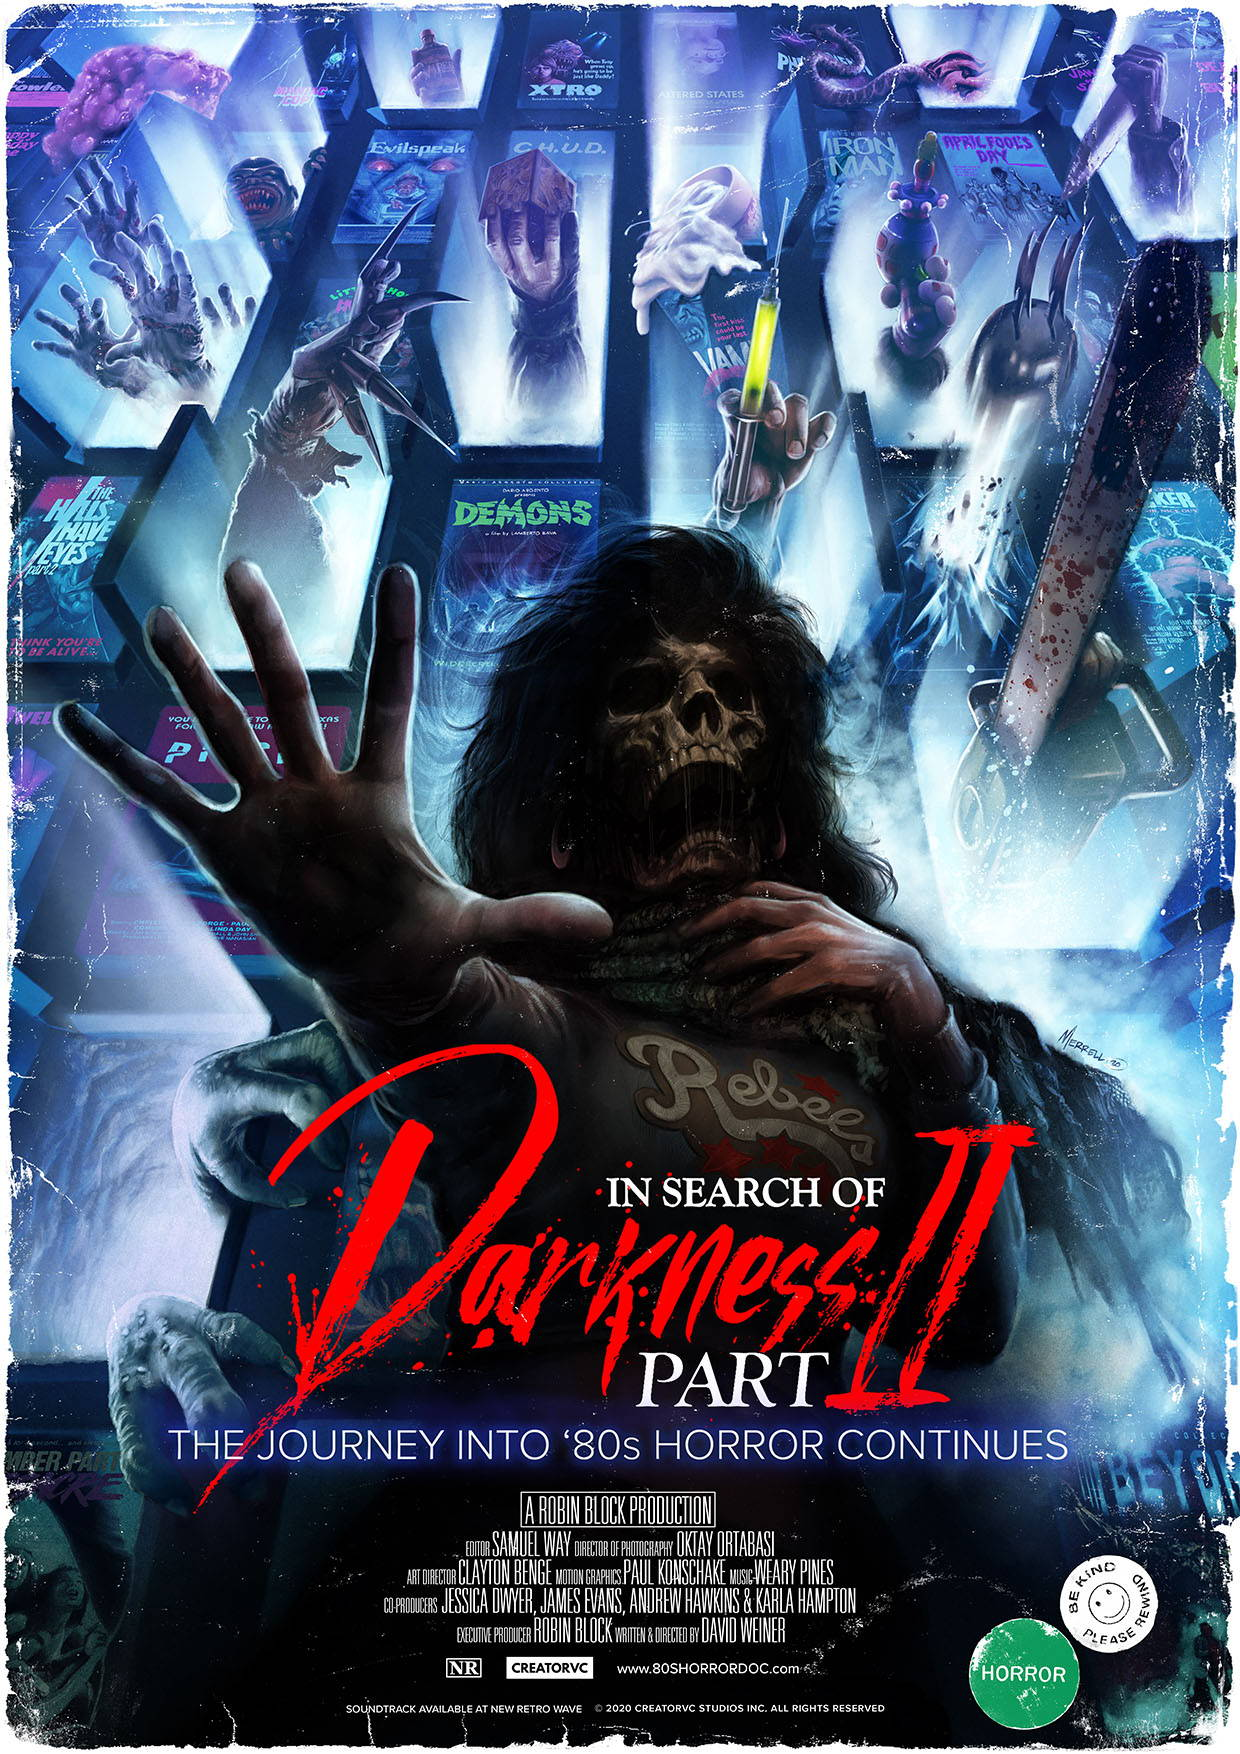 In Search of Darkness Part II Poster 2